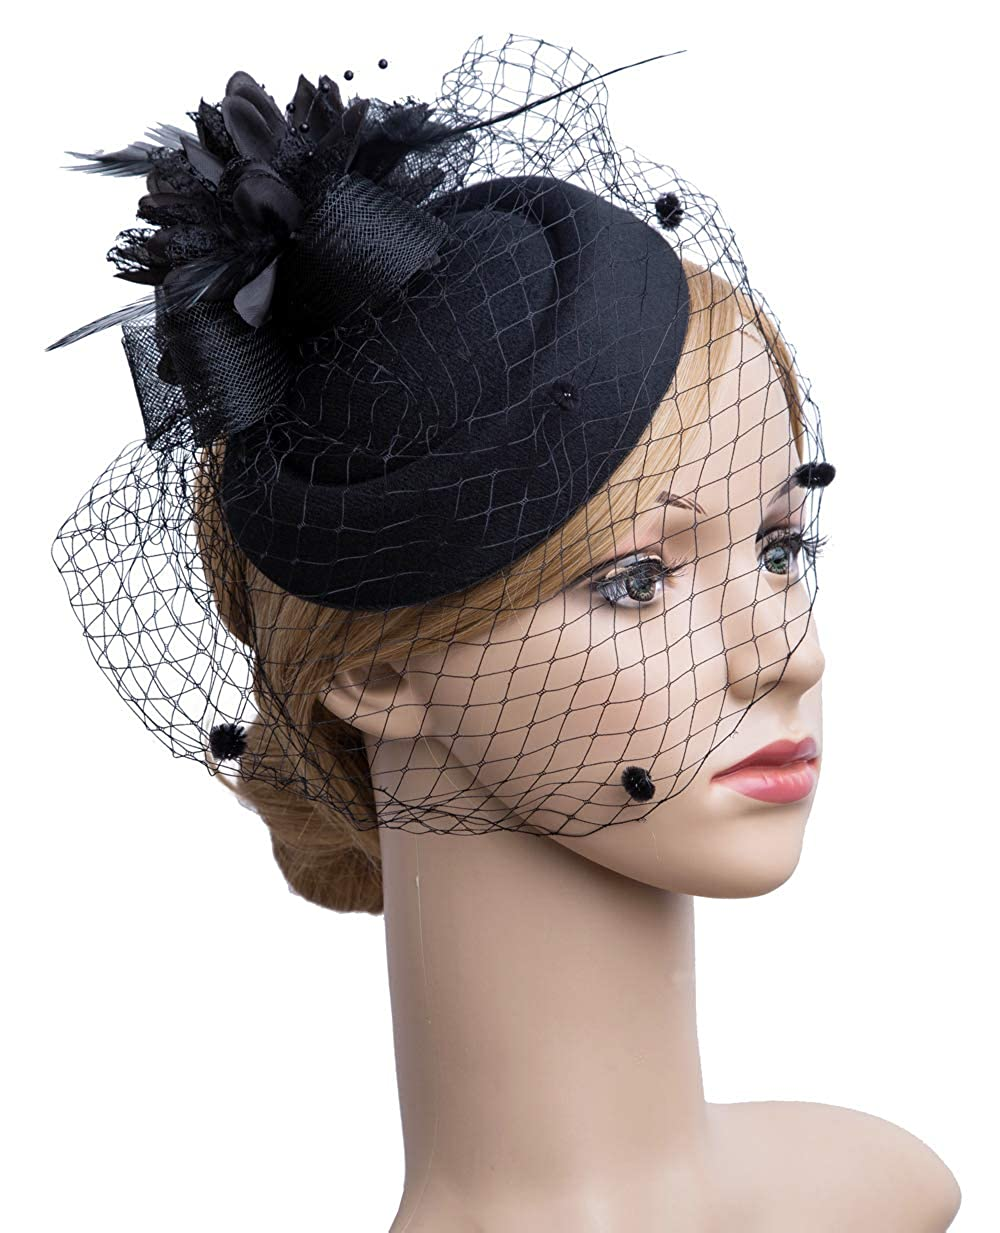 260ecf853eaed 1950s Women s Hat Styles   History Cizoe Fascinator Hair Clip Pillbox Hat  Bowler Feather Flower Veil